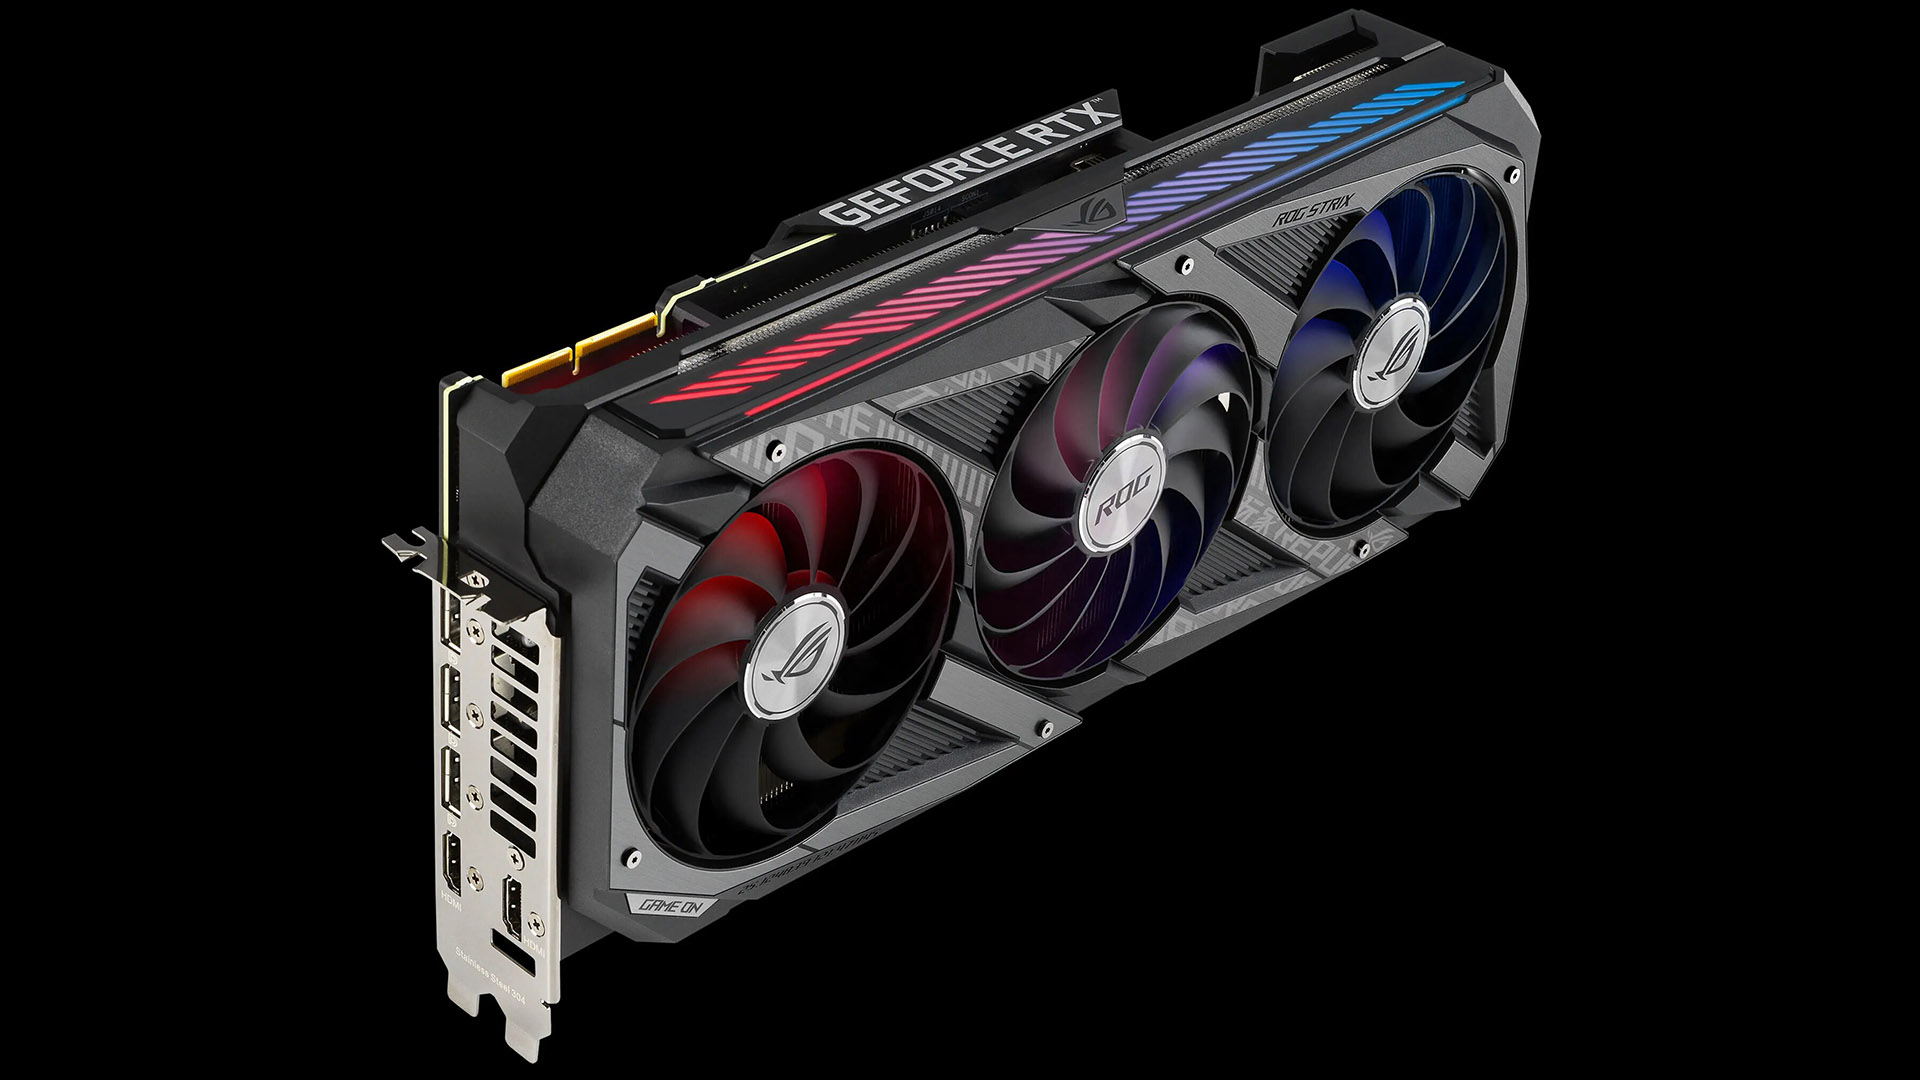 Nvidia's 20GB RTX 3080 Ti and 12GB RTX 3060 have been leaked by Asus